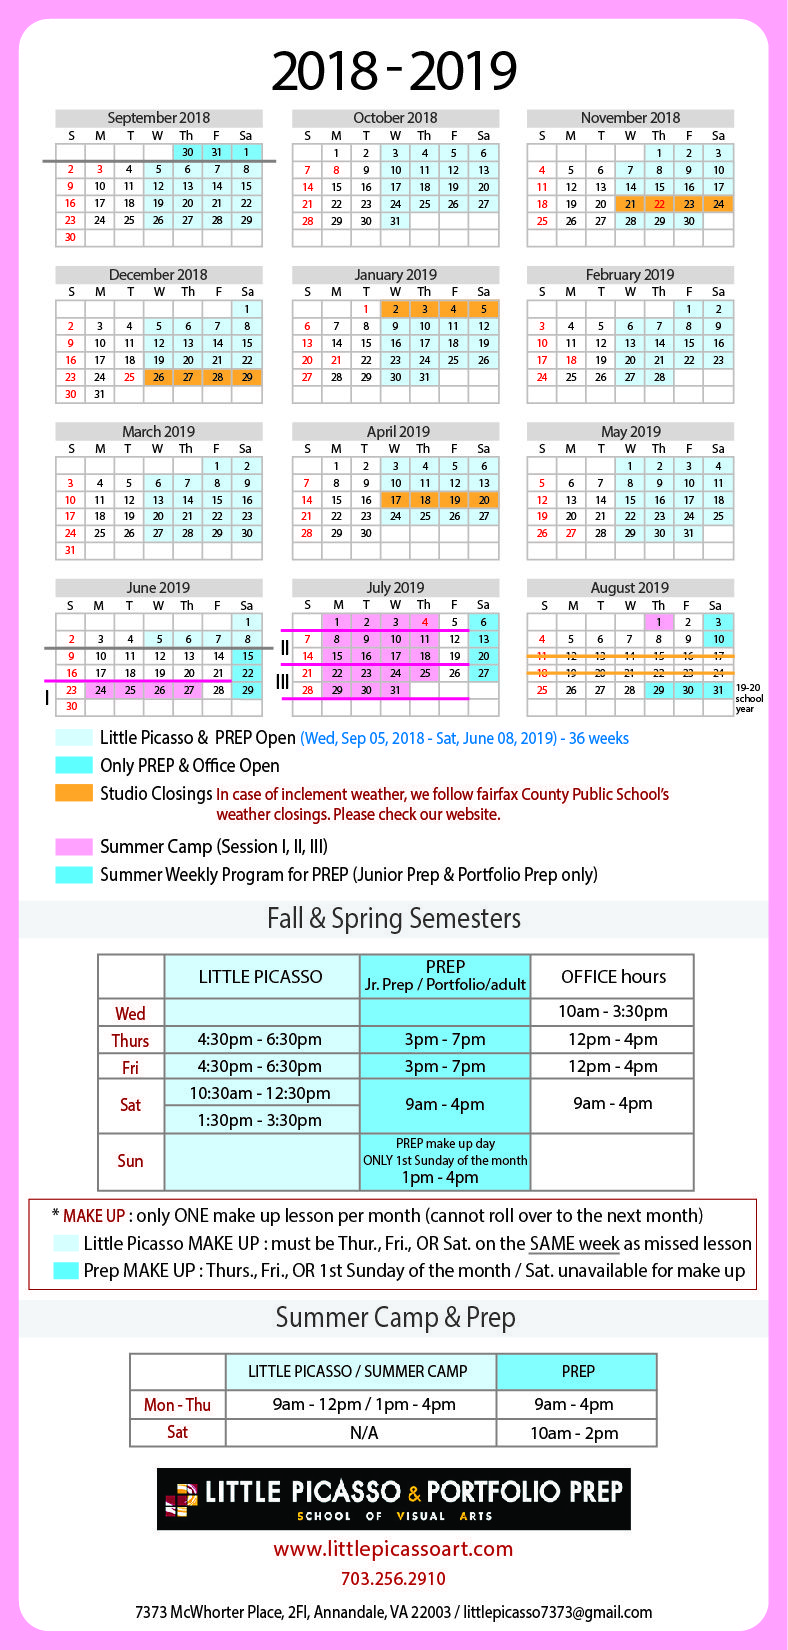 Fairfax County School Calendar 2019 Pin by Calendar on Academic Calendar in 2019 | School calendar